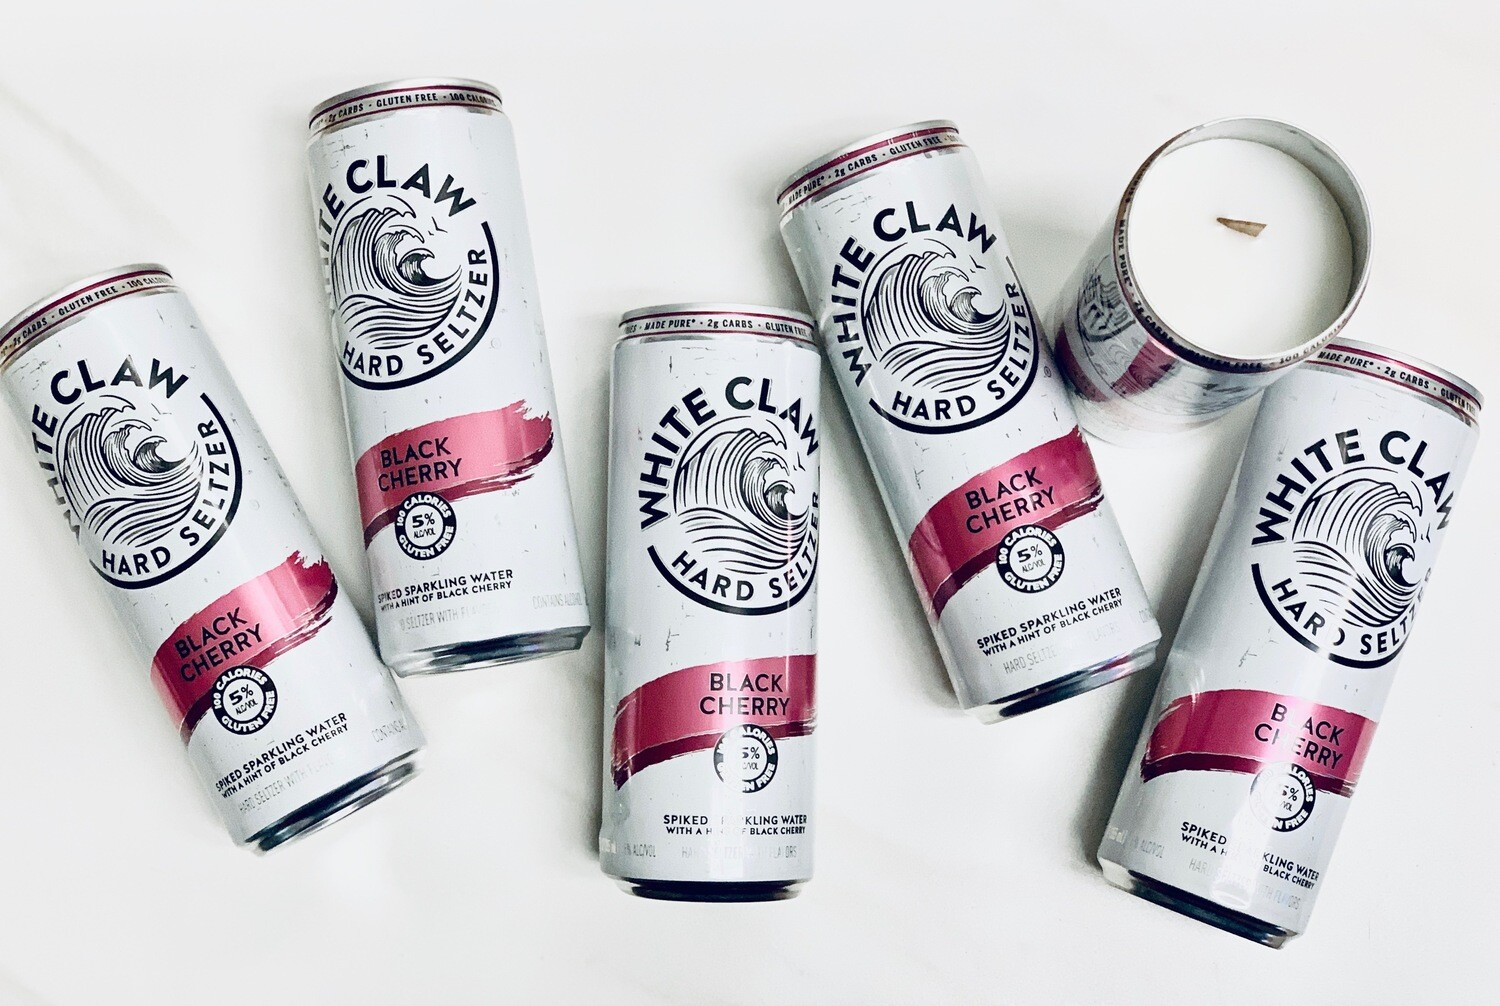 White Claw Black Cherry Candle Package